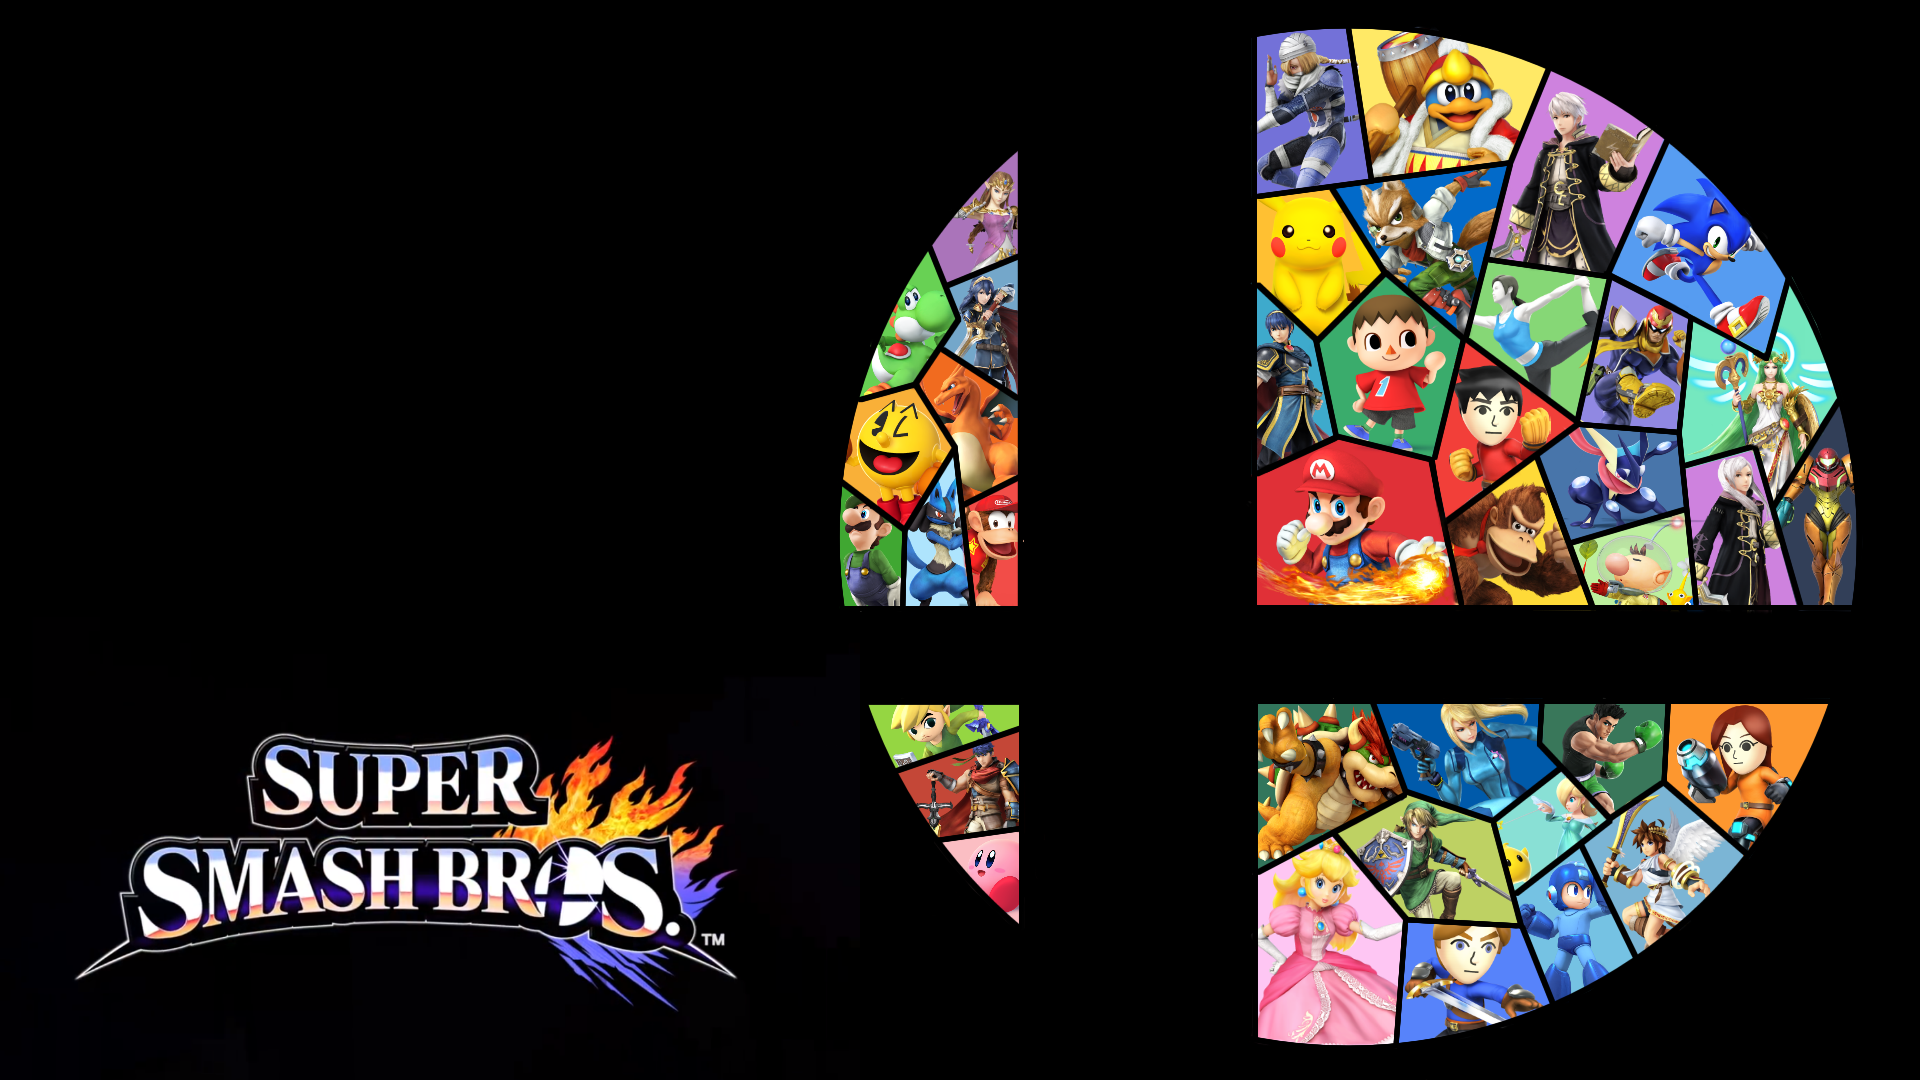 Smash 4 Wallpaper Super Smash Brothers Know Your Meme